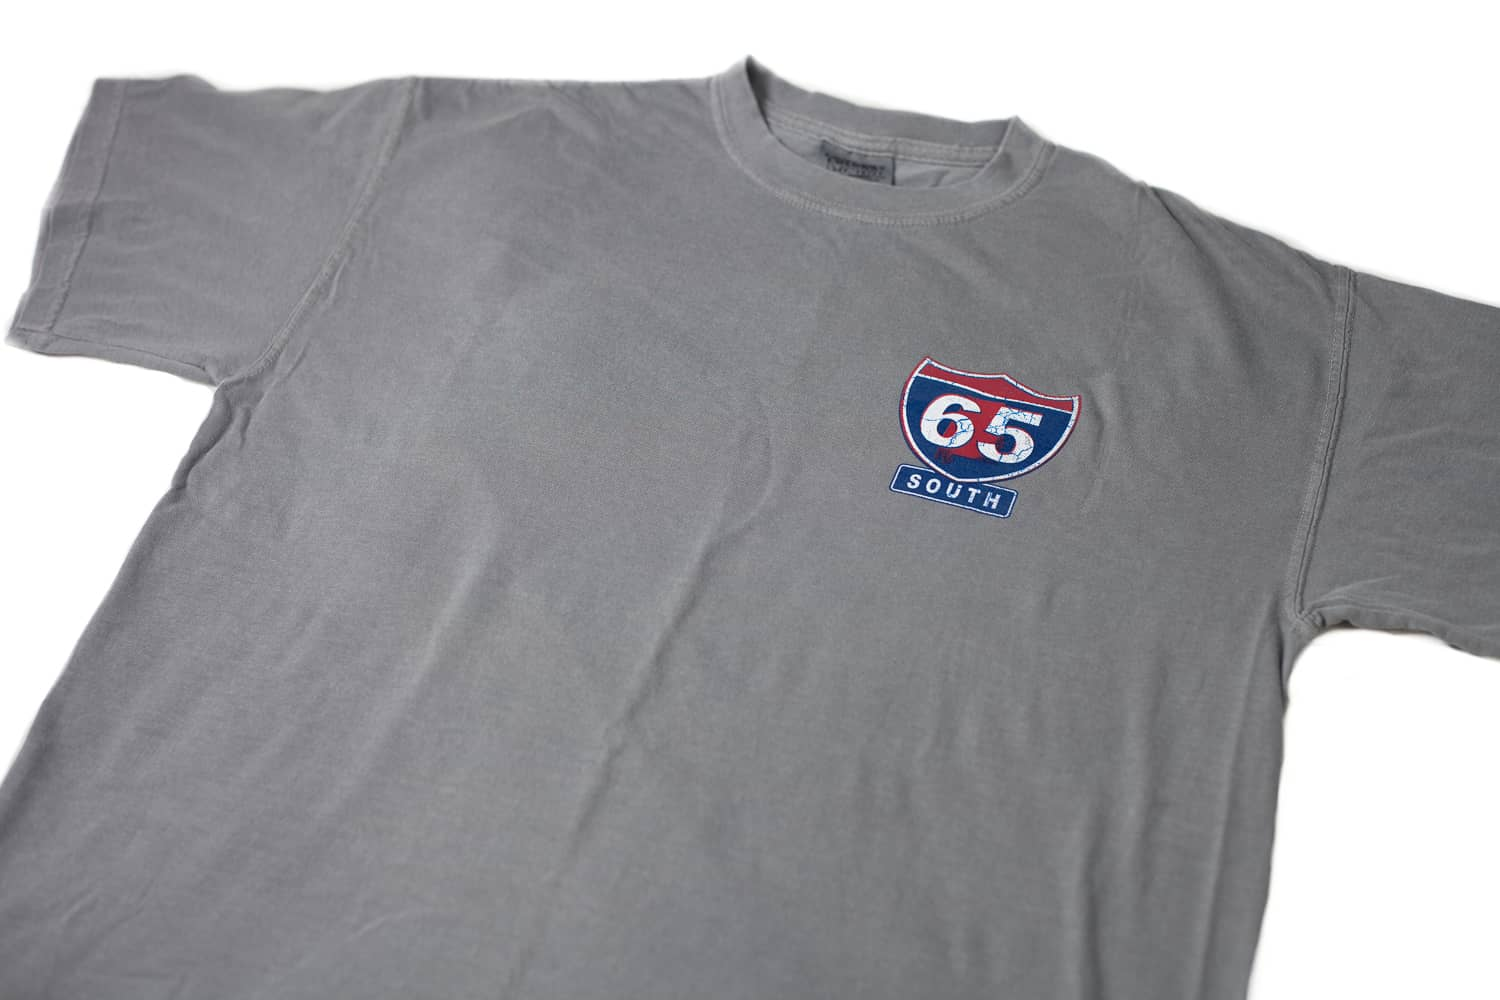 grey 65 south clothing